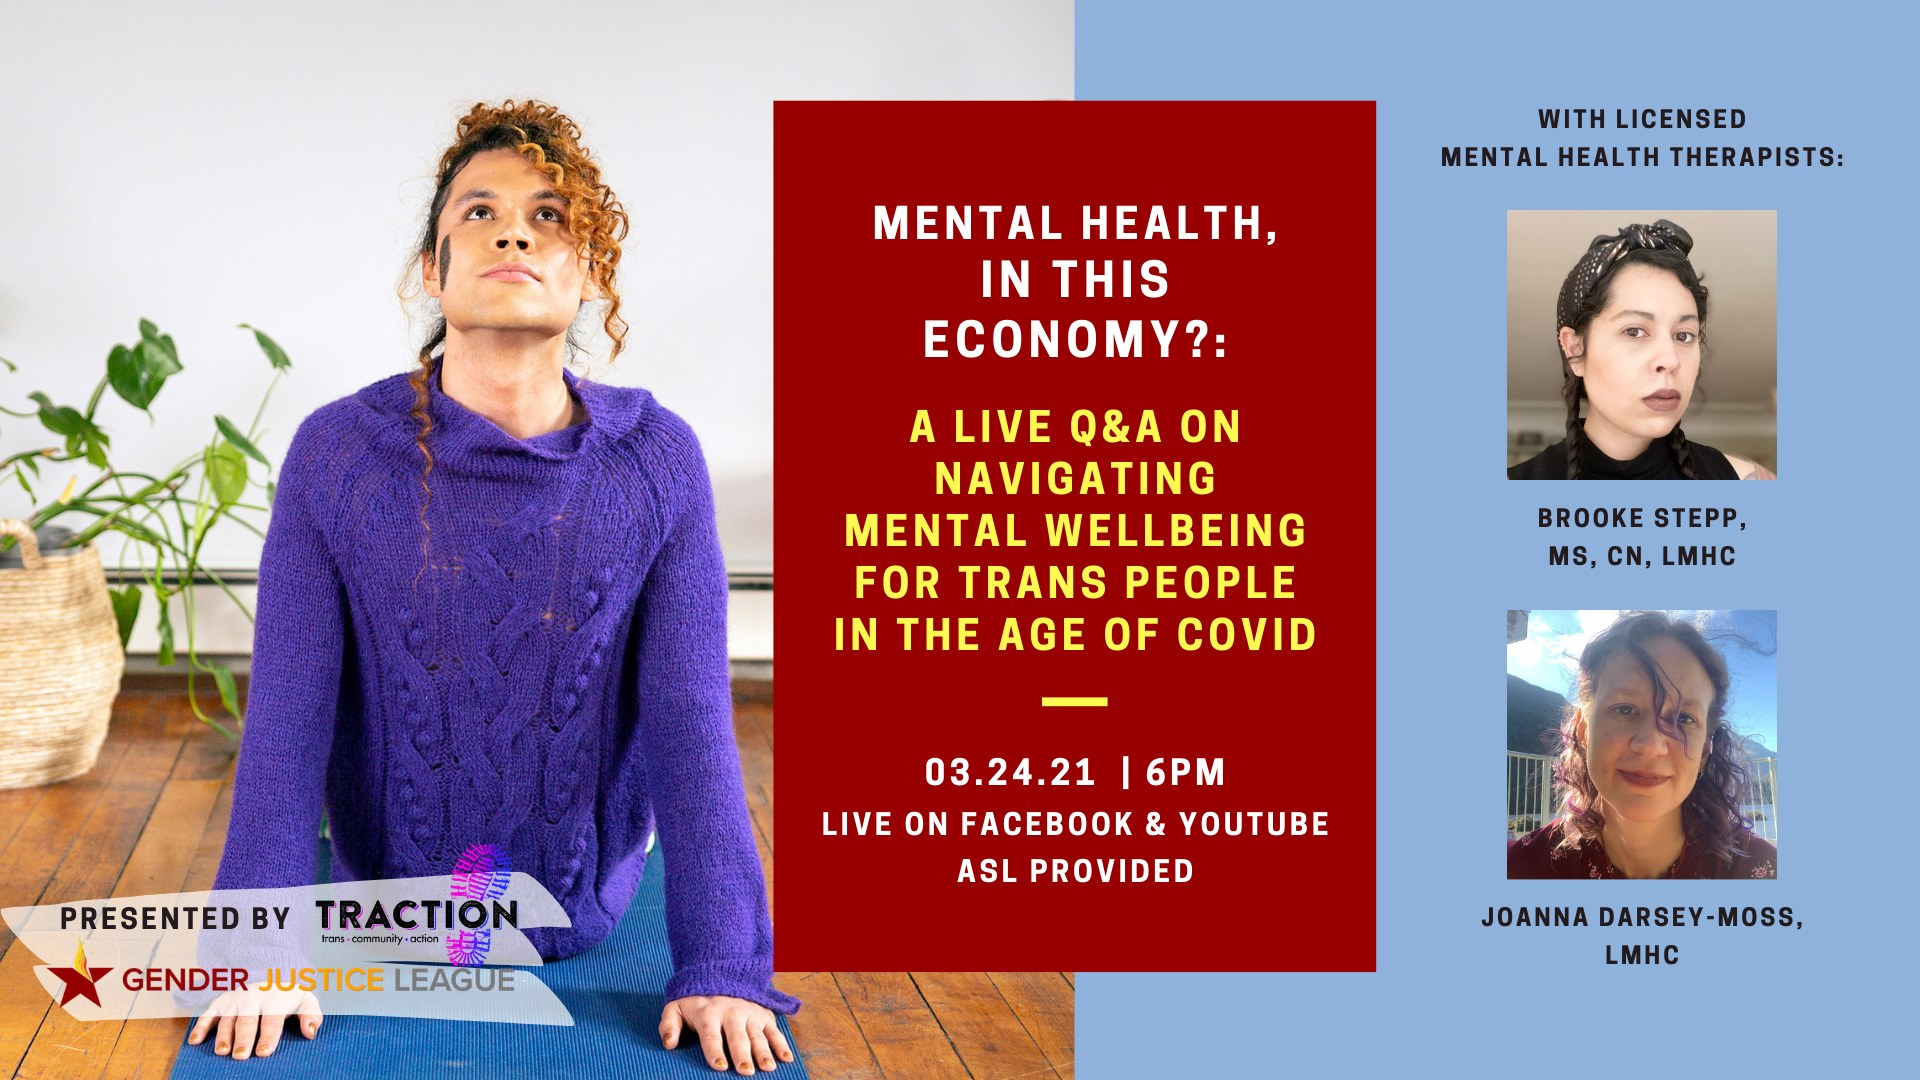 Mental Health, in THIS Economy?: A Live Q&A On Mental Wellbeing for Trans People Amidst COVID